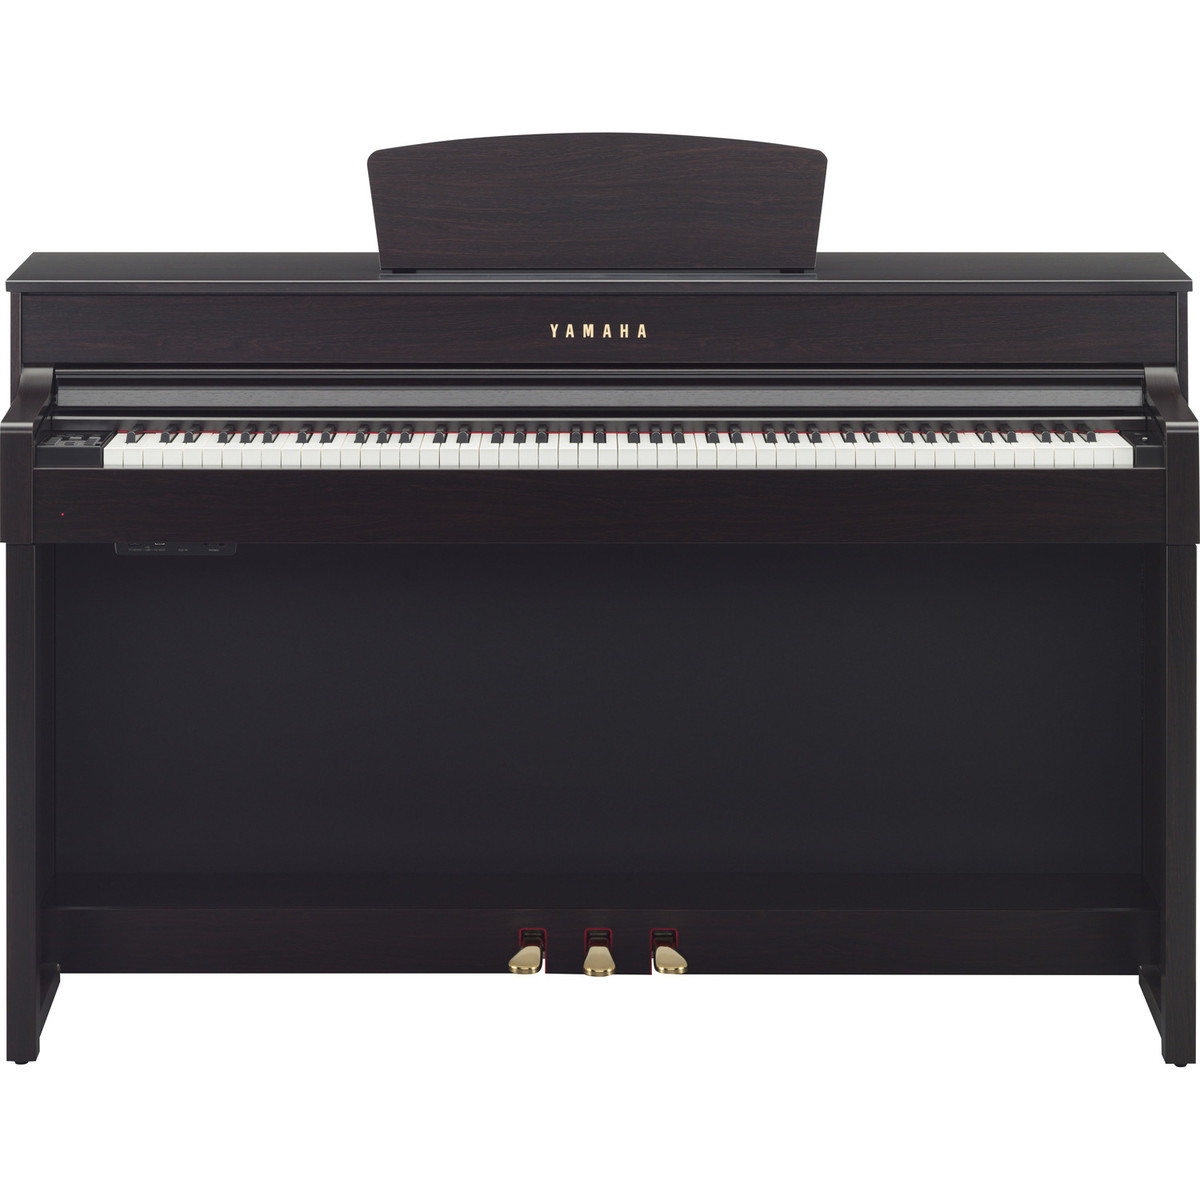 yamaha clavinova clp535 piano num rique palissandre. Black Bedroom Furniture Sets. Home Design Ideas